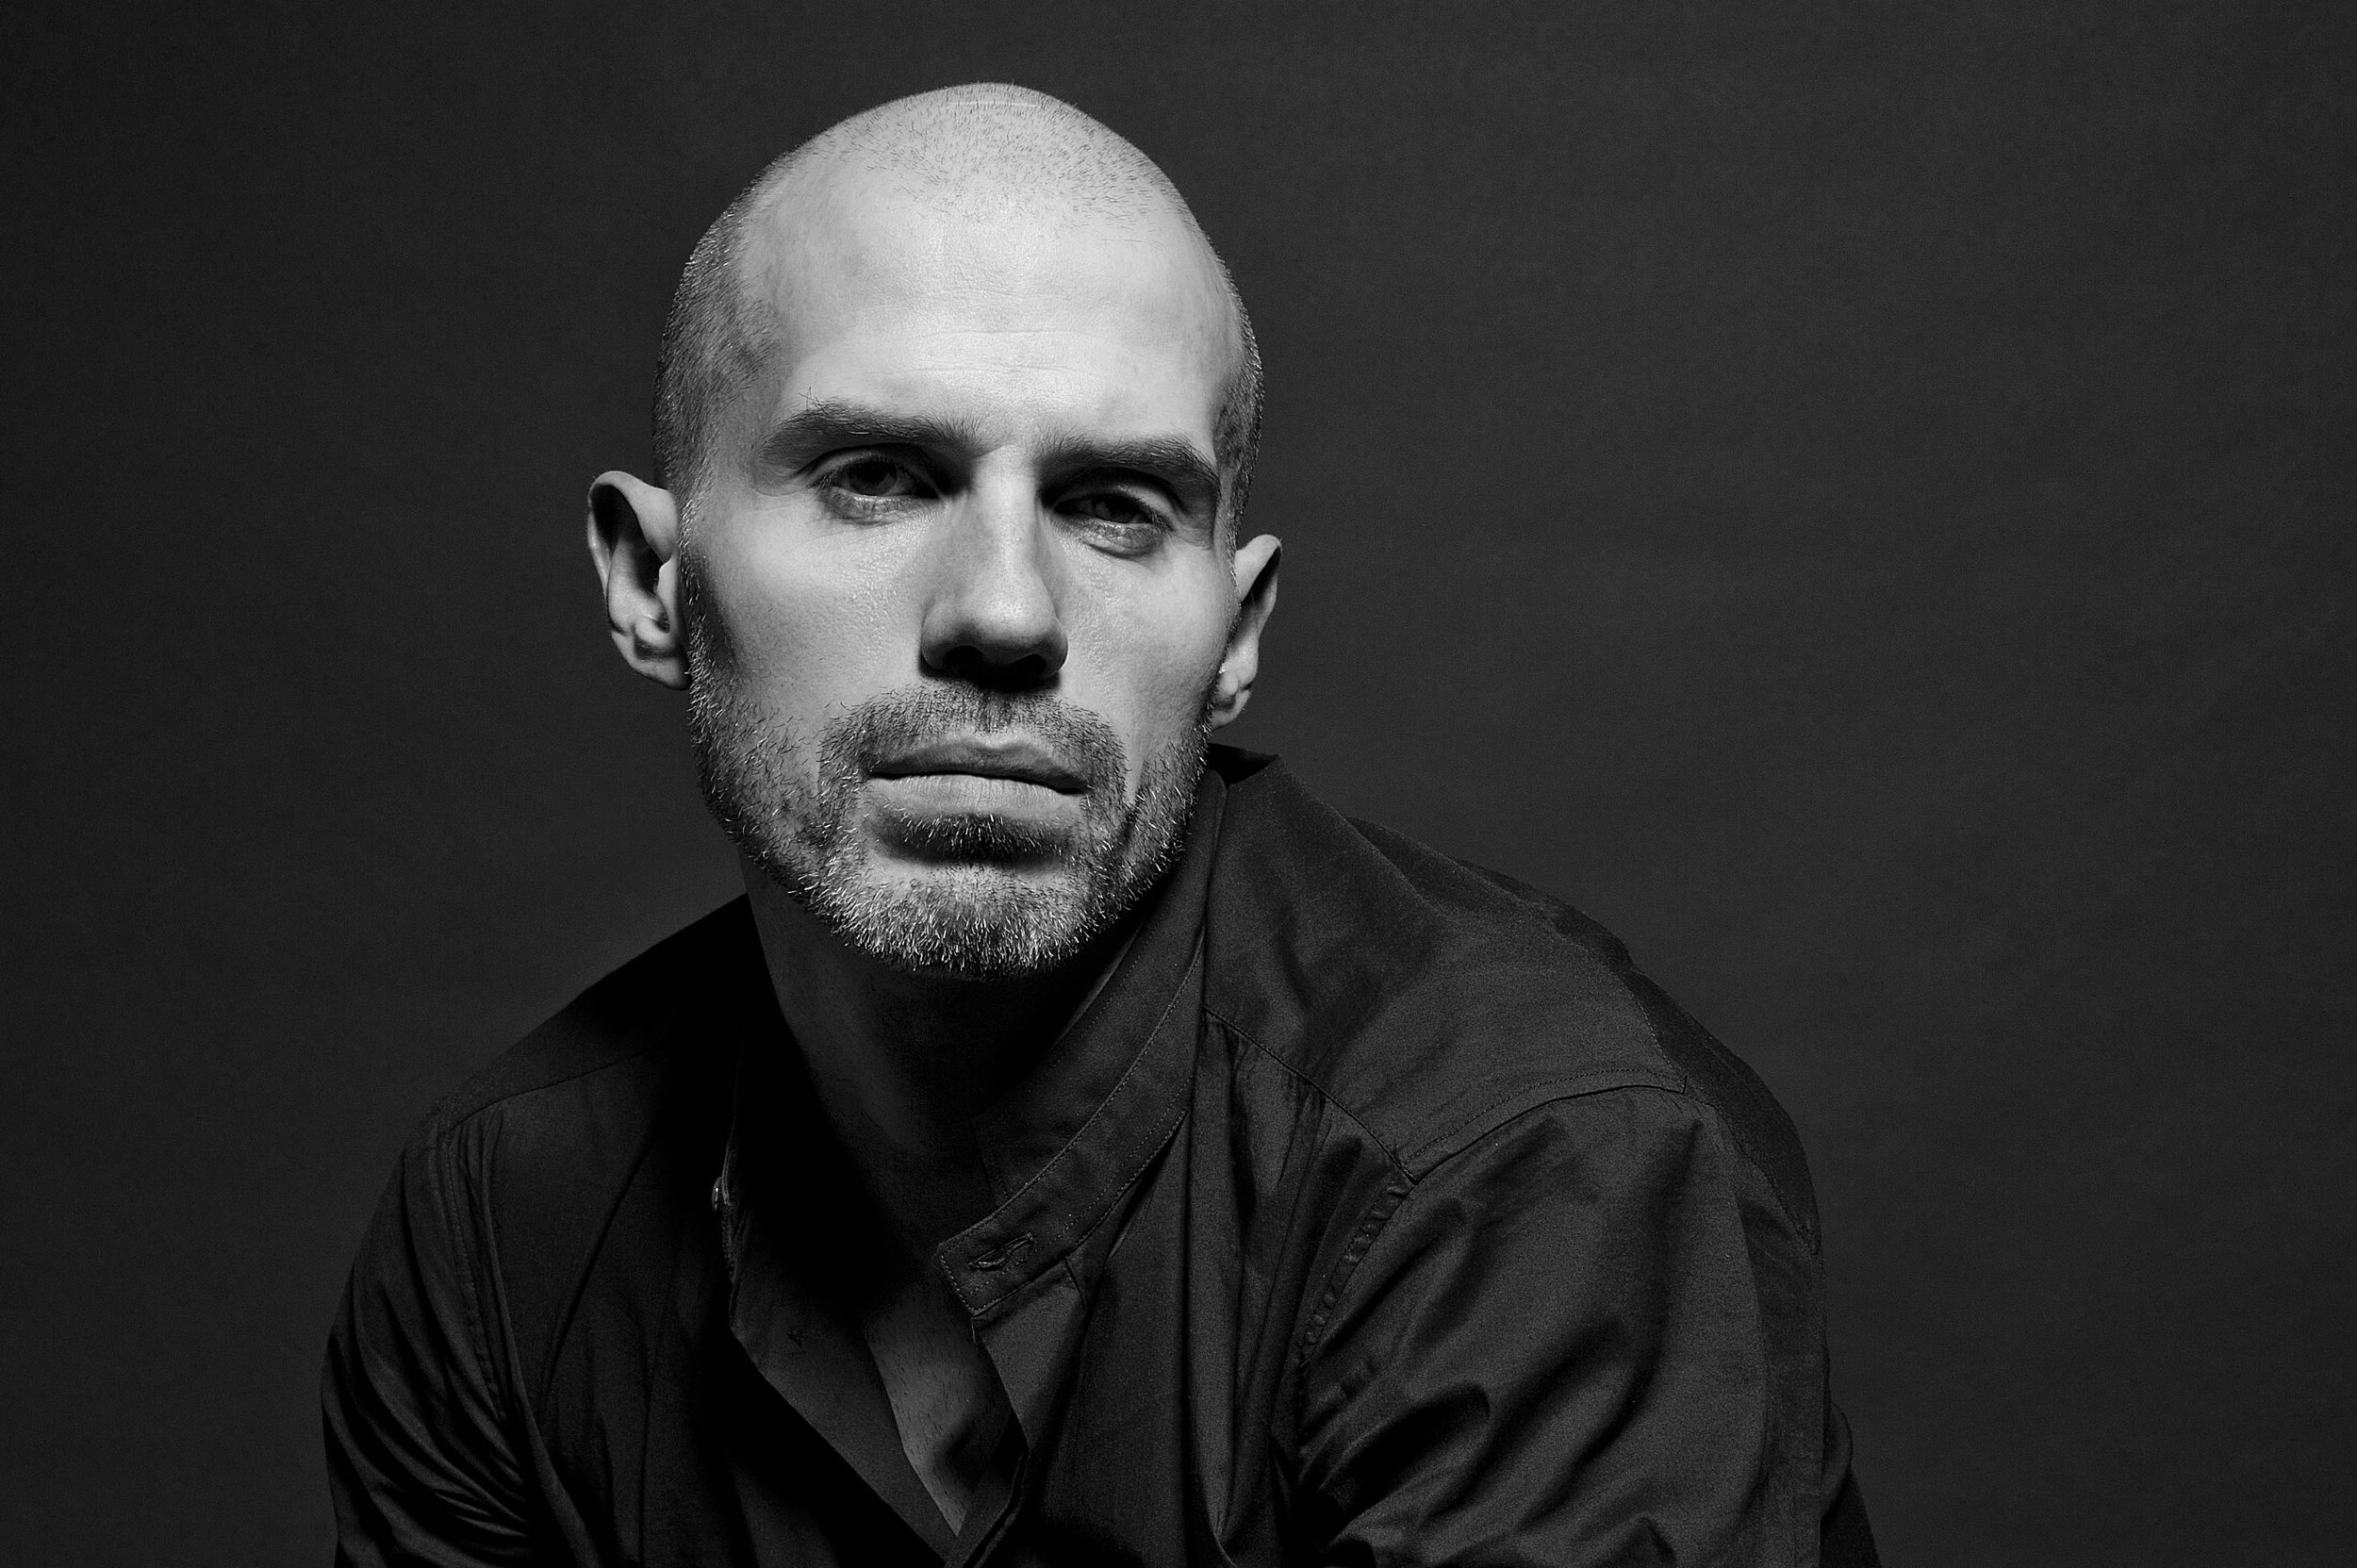 """Born in Bulgaria he worked in companies like The National Opera of Sofia, Jeunne Ballet de France, Ballet National de Nancy et Lorraine and the Compañia Nacional de Danza under the direction of Nacho Duato. He became a freelance dancer, choreographer,teacher and assistant in 2009.In 2011 together with Gentian Dodahe choreographed S.O.S. and 1/2 Waltz wich  won first prize in both the Copenhagen and Hannover choreography competitons.His duo 'Aimless' won the 1st prize in the International Competition for Choreography Burgos-New York2014: 'Aimless' won 2nd prize, and Best Performer for his partner Tamako Akiyama and Production Award for the Royal Danish Ballet in the Copenhagen Choreographic Competition.He ctreated works forT.H.E company (Singapore) in 2013 and 2017 and for Compañia Nacional de Danza em 2016He also created 'Entre Mareas' and """"Broken Lines"""" full length works for the Festival Madrid en Danza.Together with Tamako Akiyama he was invited by Manuel Legris for 'The New Universe of Manuel Legris in Vienna, Paris and Tokyo."""